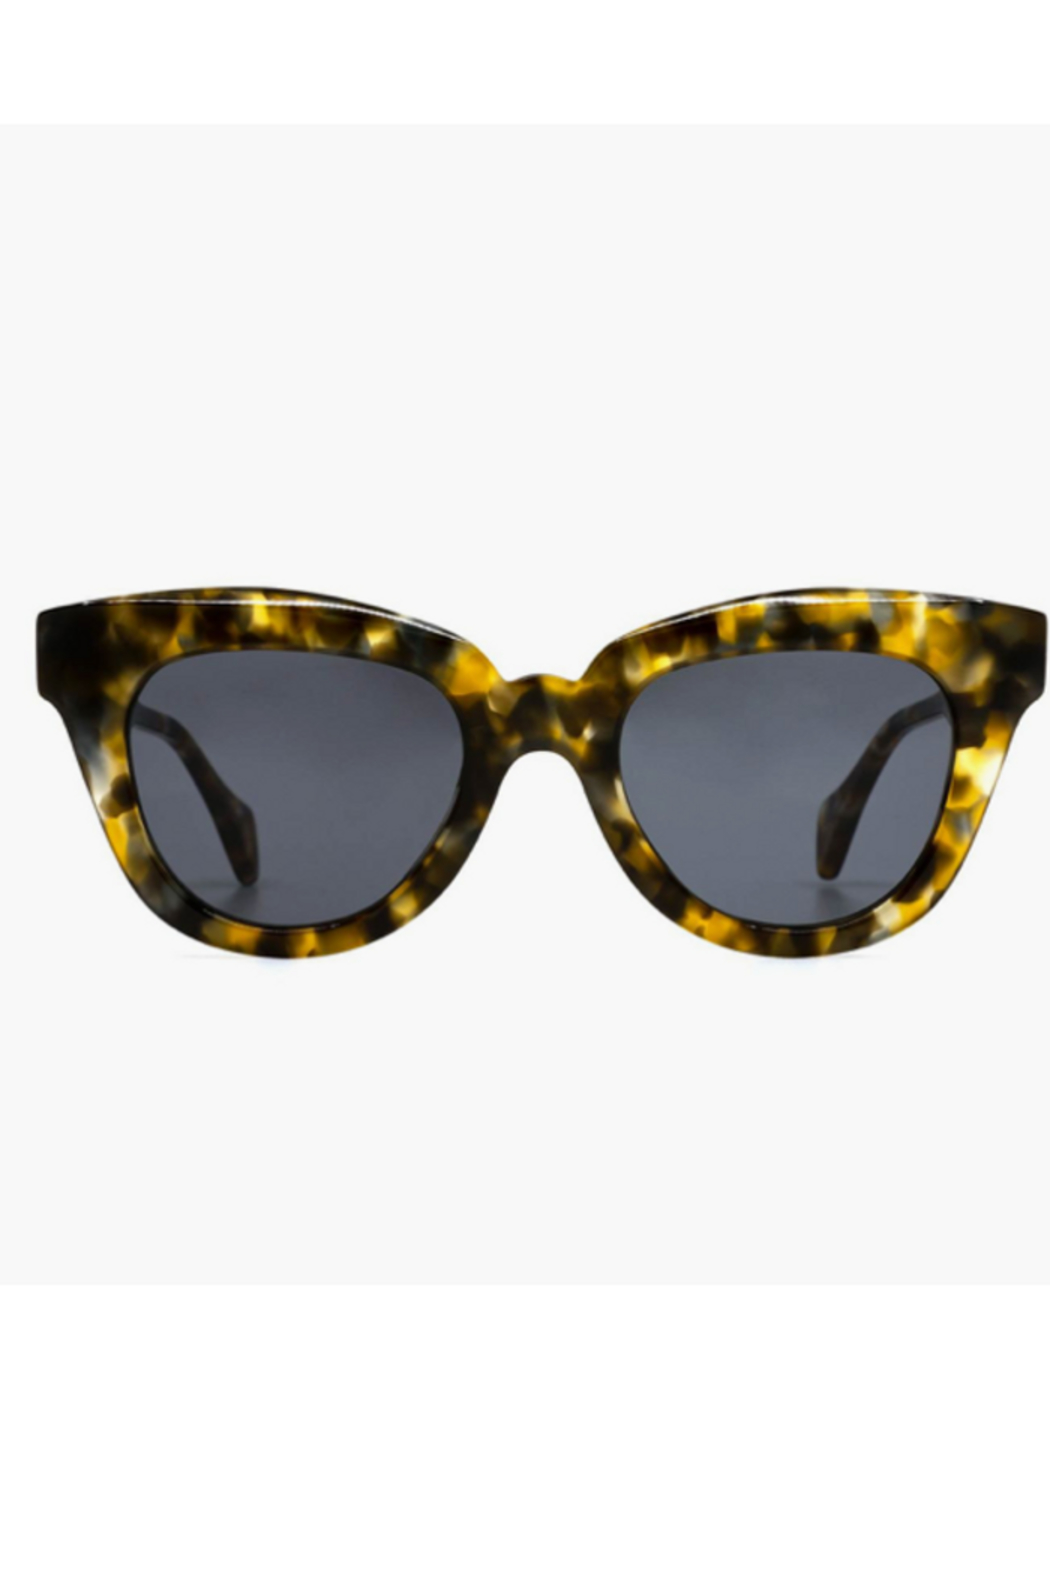 DIFF Jagger Tortoise with Grey Lens Sunglasses - Main Image